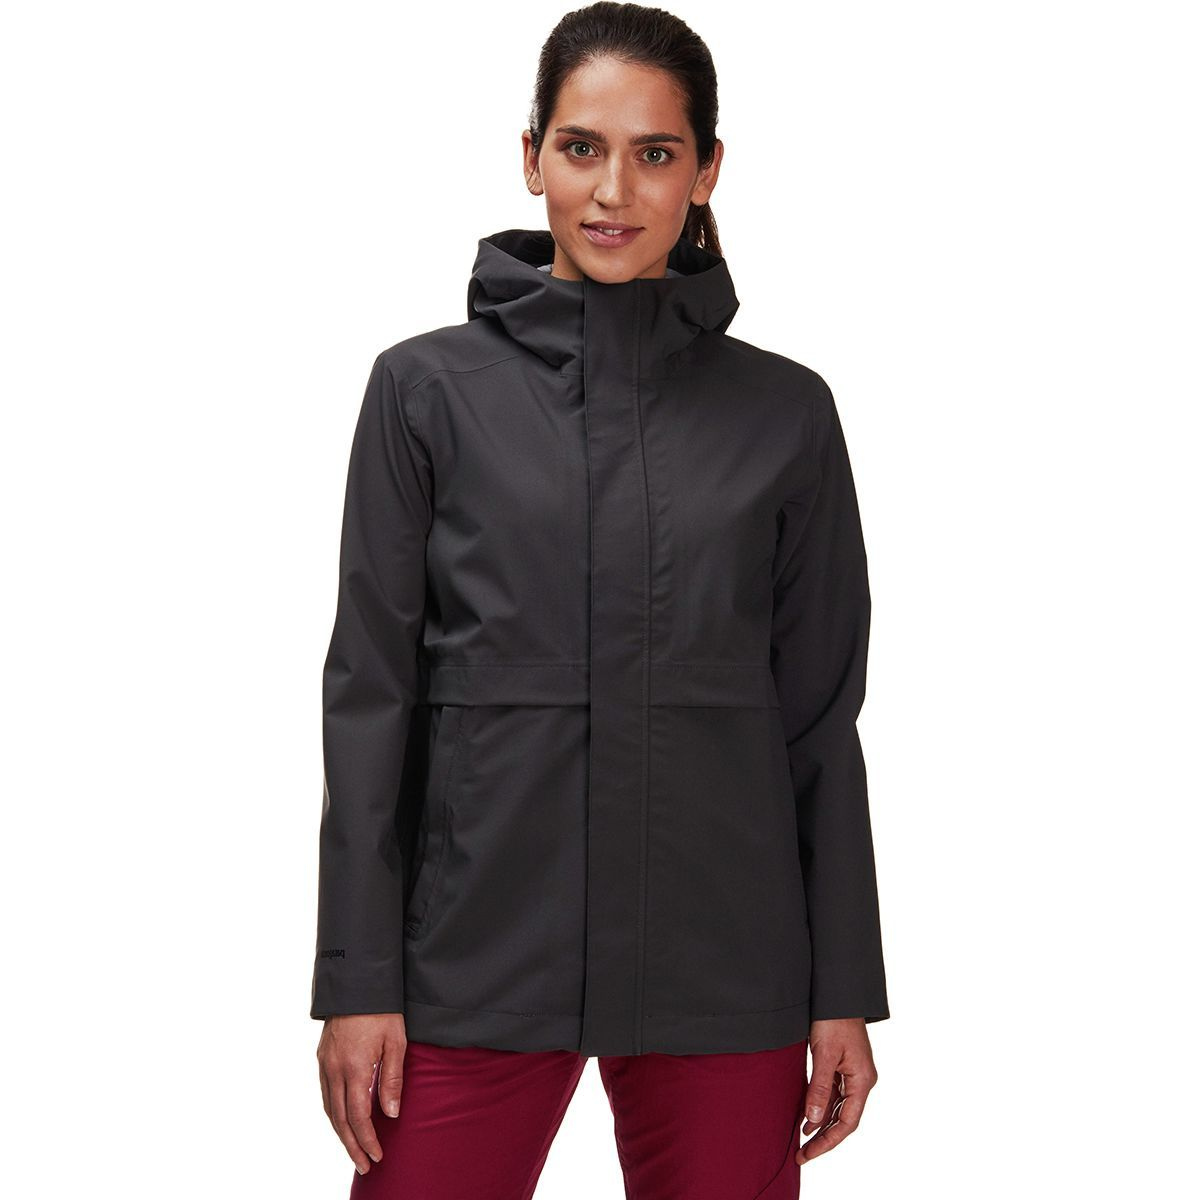 Patagonia Cloud Country Jacket - Women's